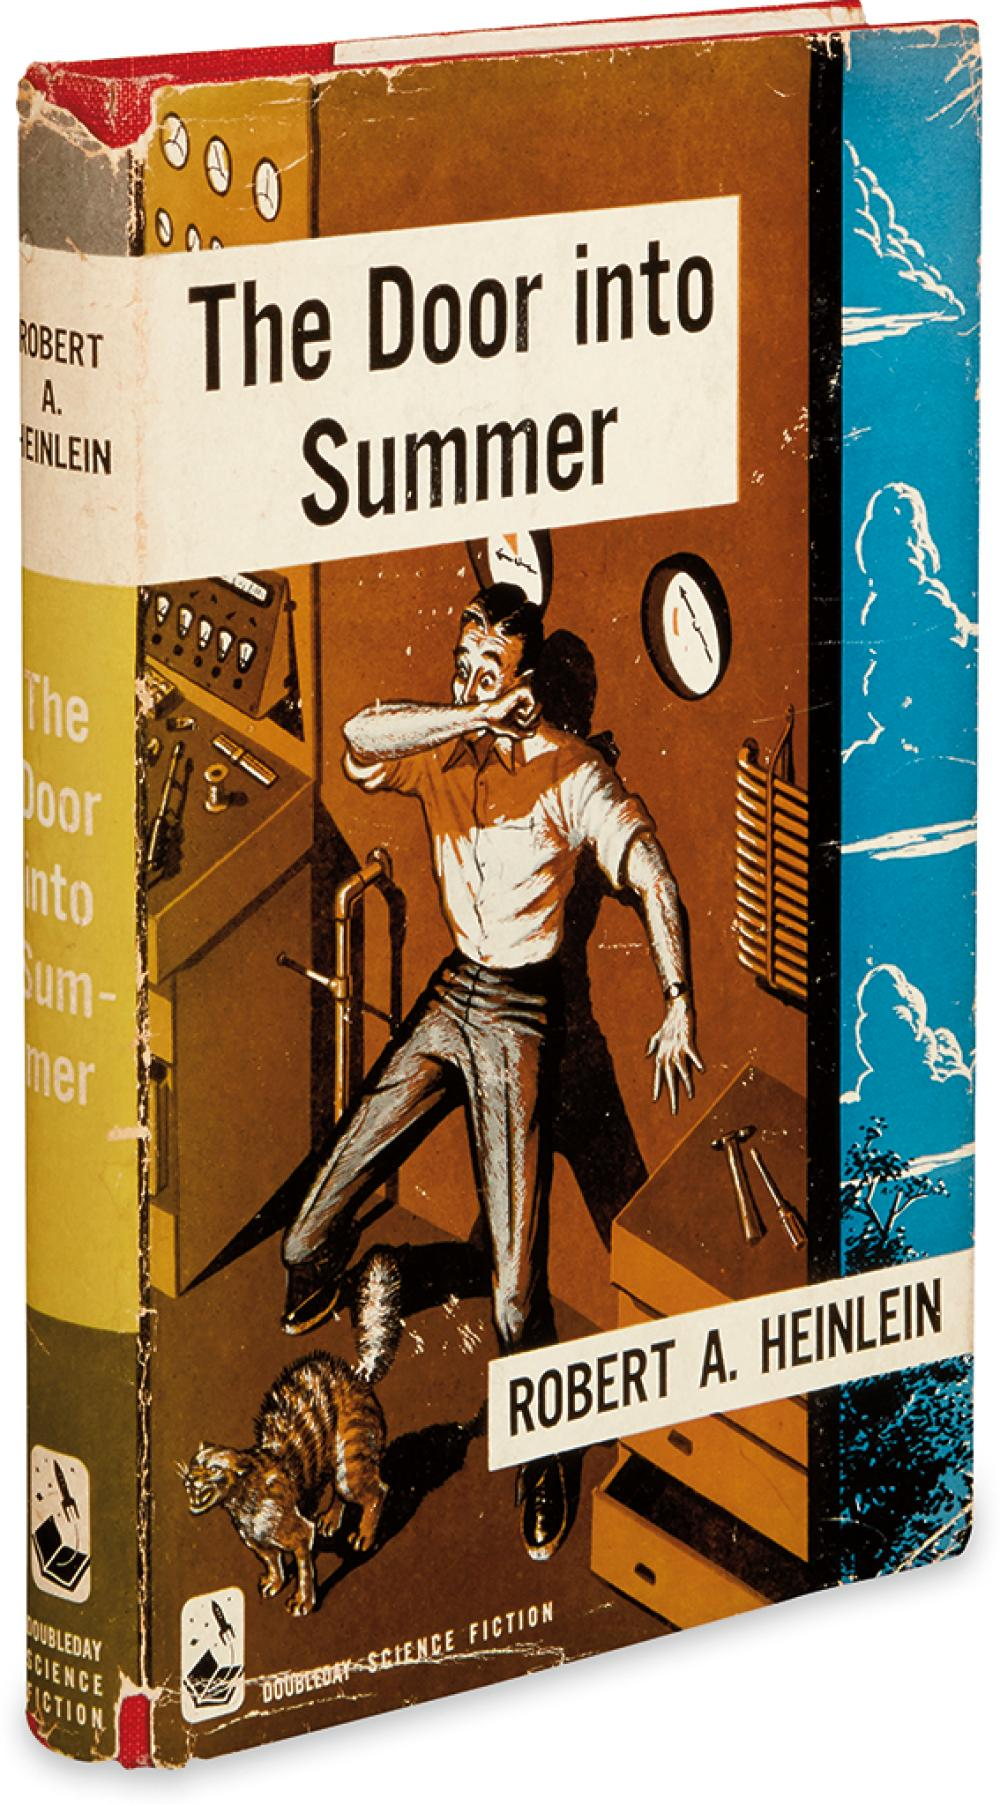 HEINLEIN, ROBERT A. The Door into Summer.